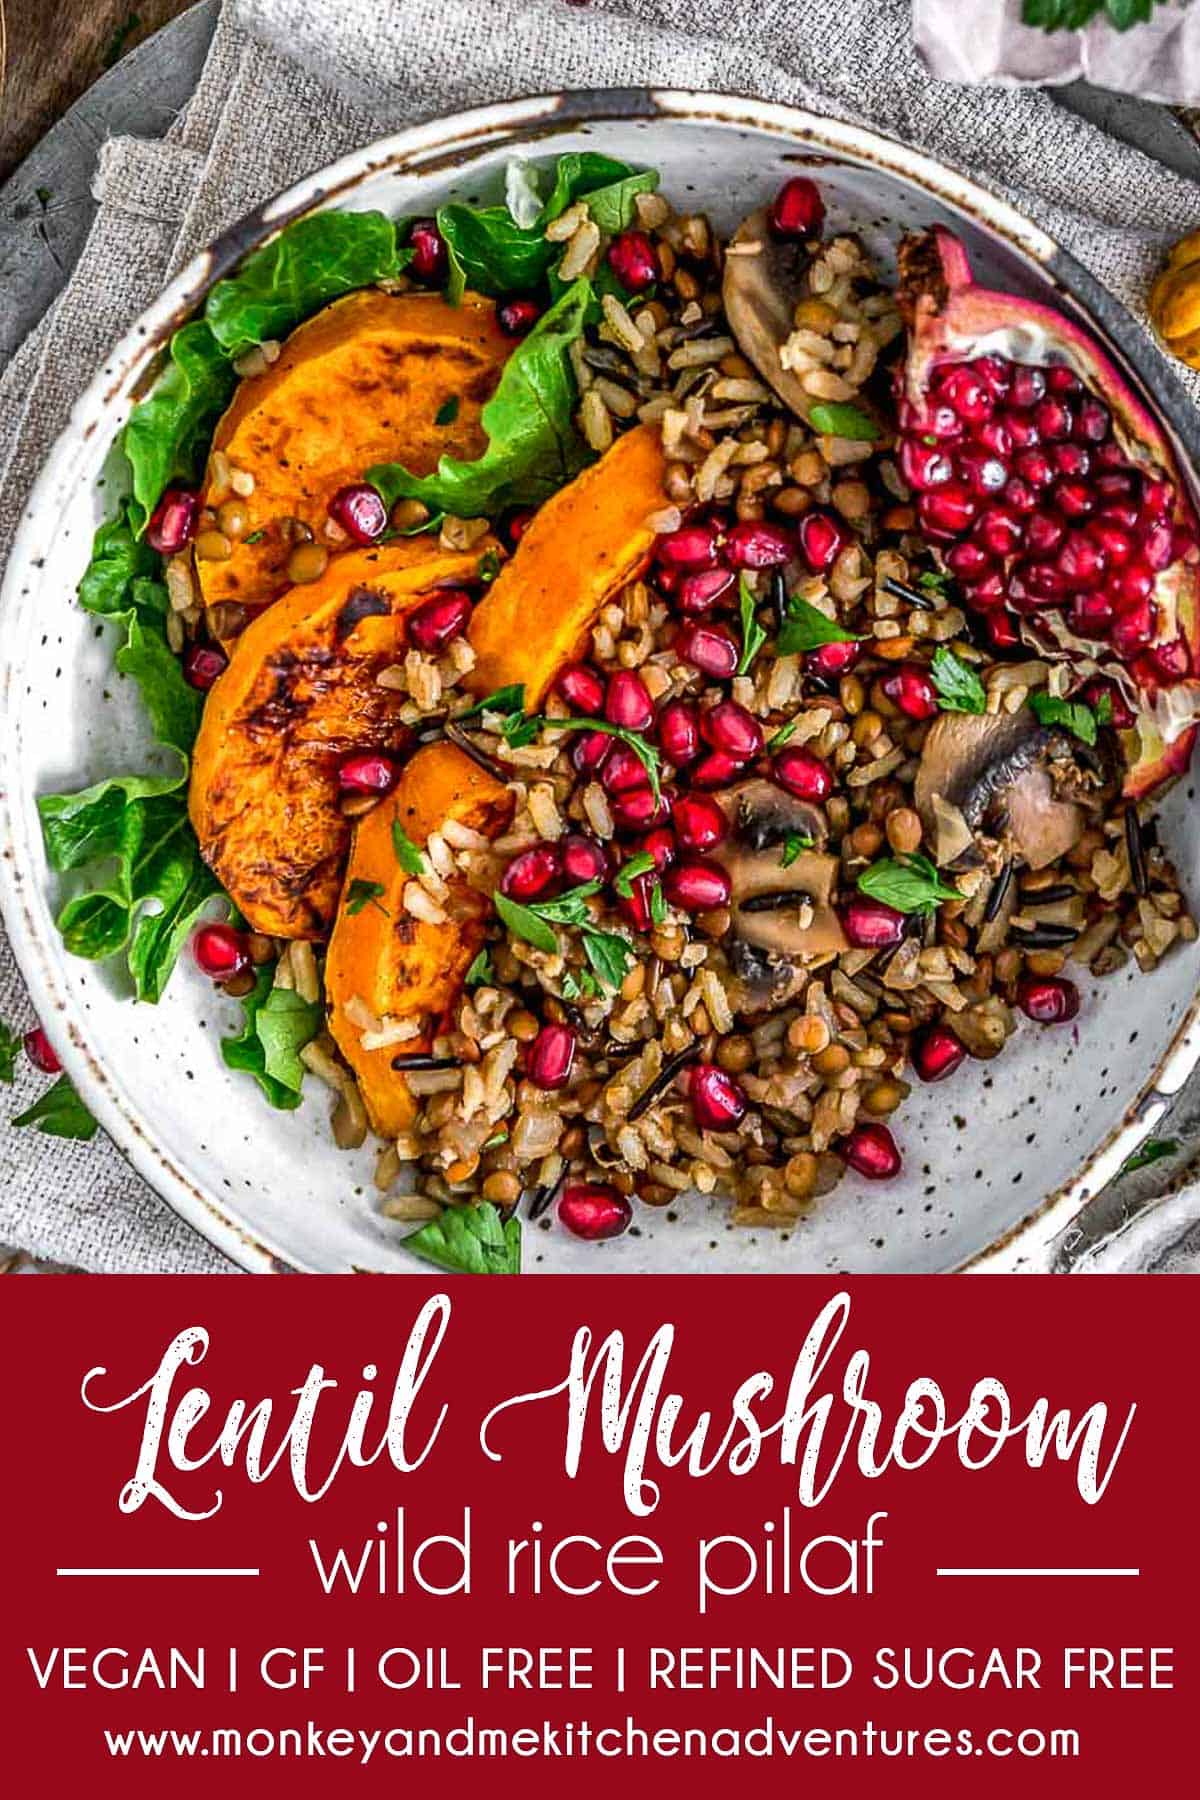 Lentil Mushroom Wild Rice Pilaf with text describing it